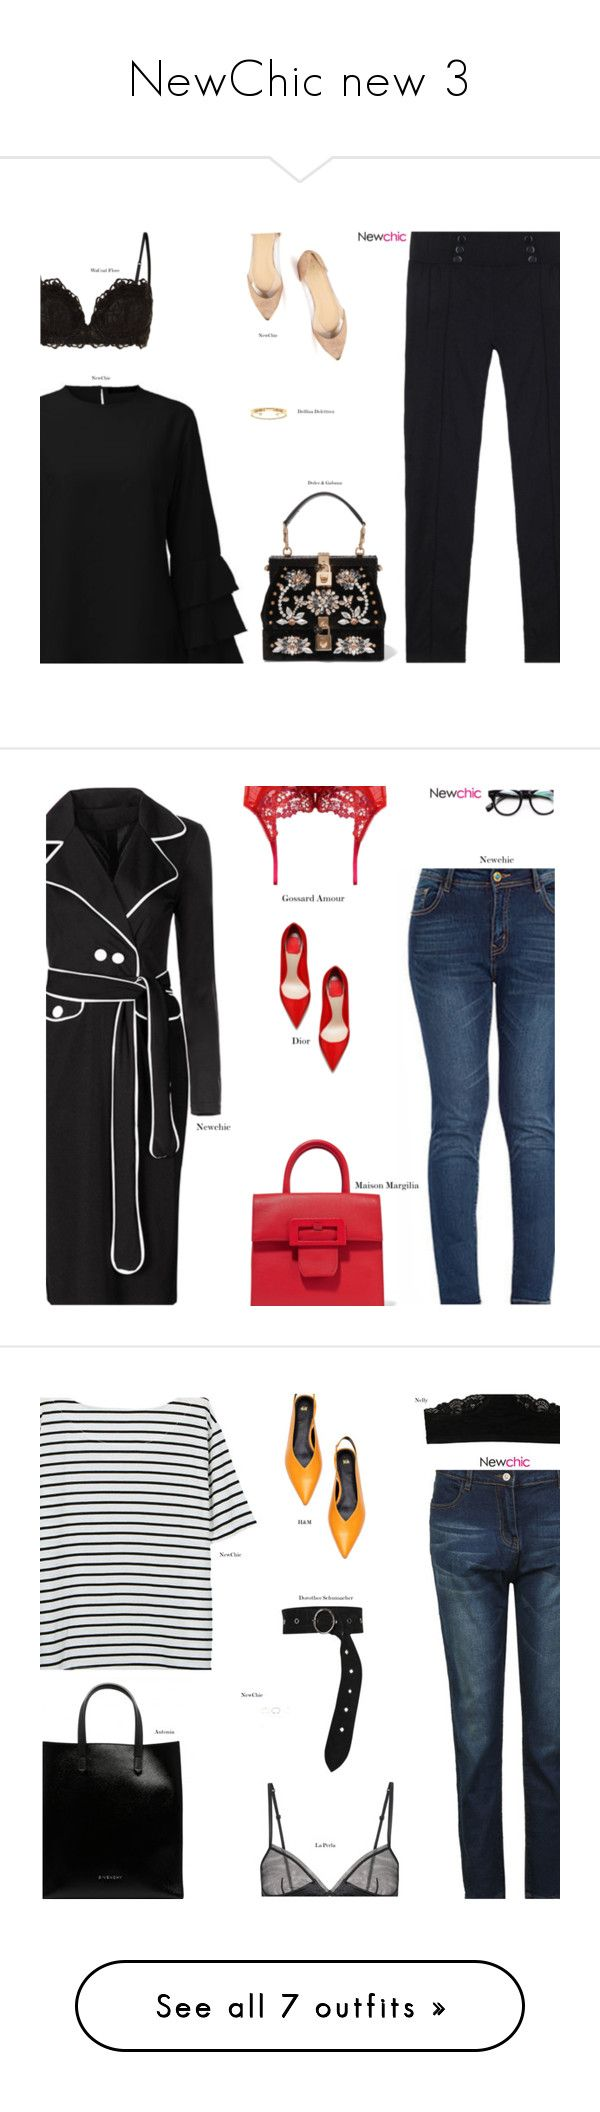 """NewChic new 3"" by s-thinks ❤ liked on Polyvore featuring Wacoal, Dolce&Gabbana, Delfina Delettrez, minimal, minimalism, Minimaliststyle, Maison Margiela, Gossard, Dorothee Schumacher and Roland Mouret"